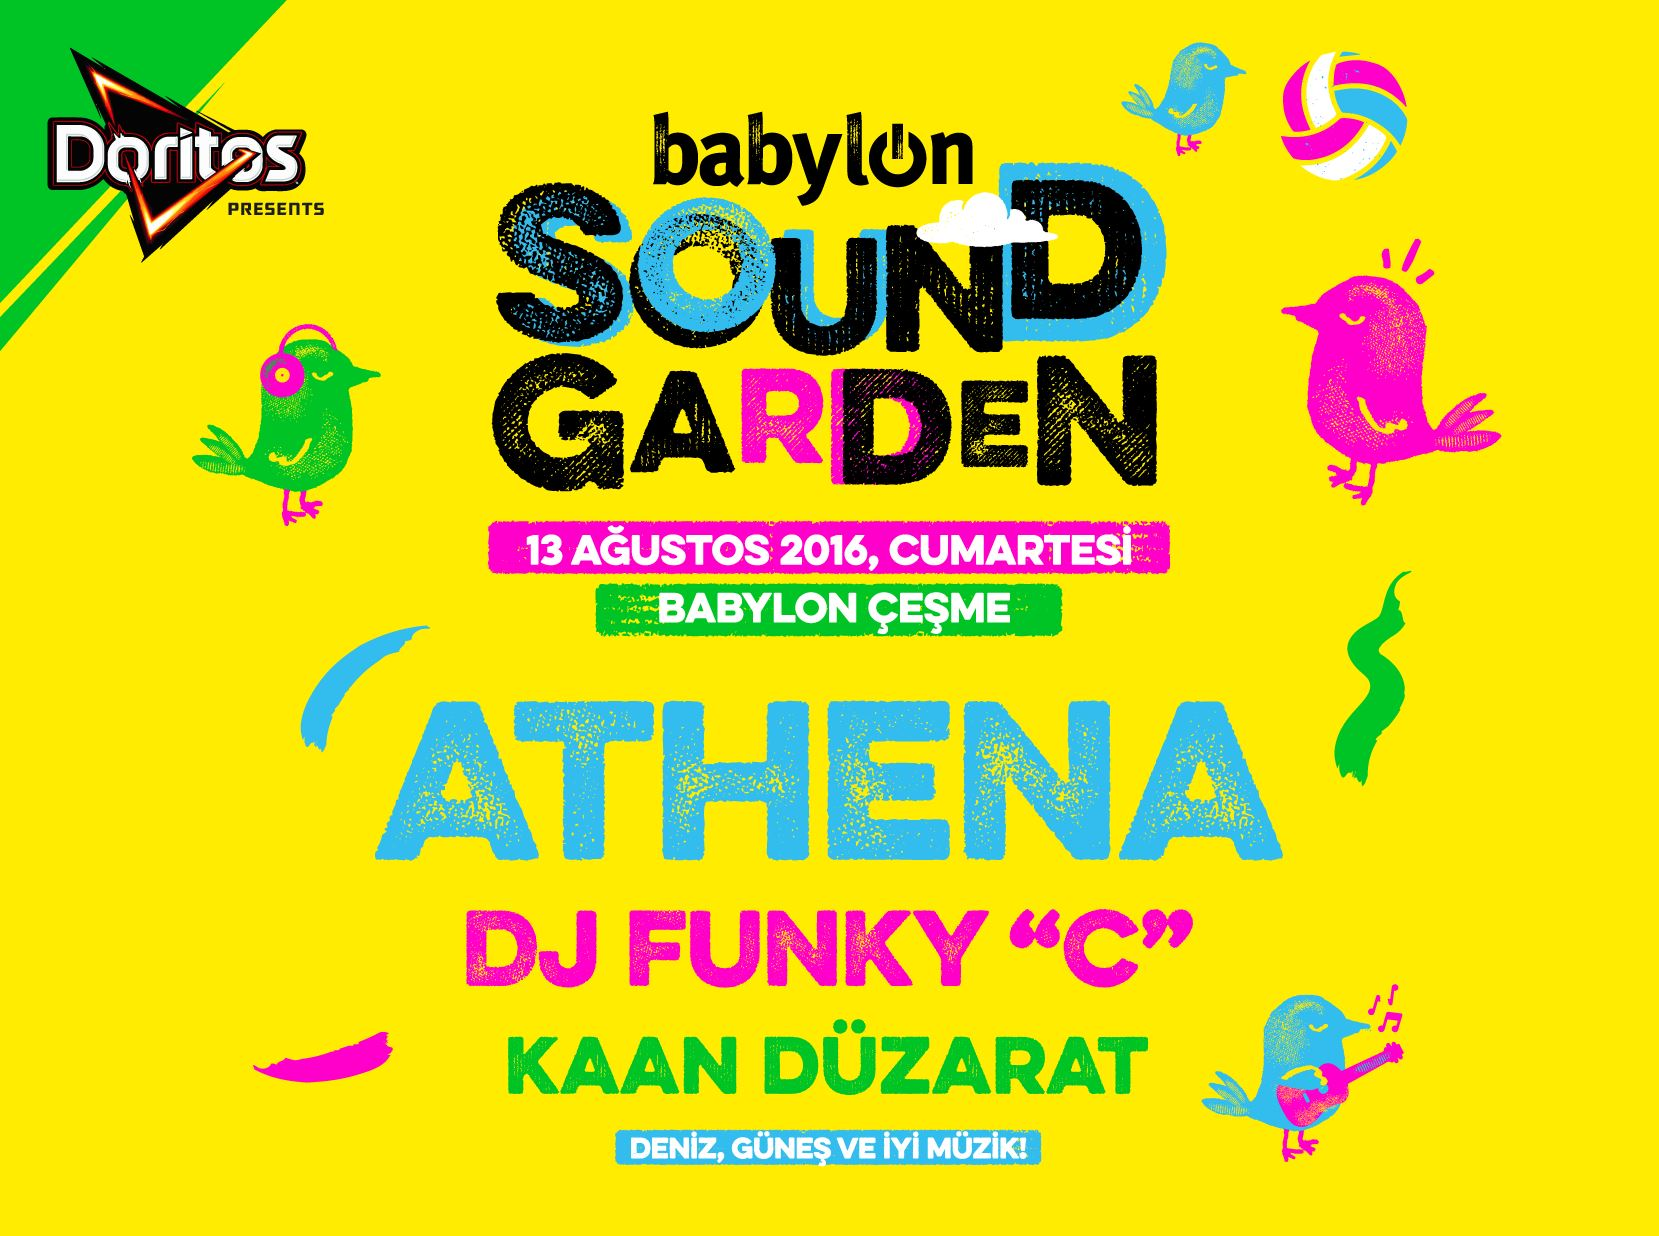 Doritos Presents: Babylon Soundgarden Çeşme 2016